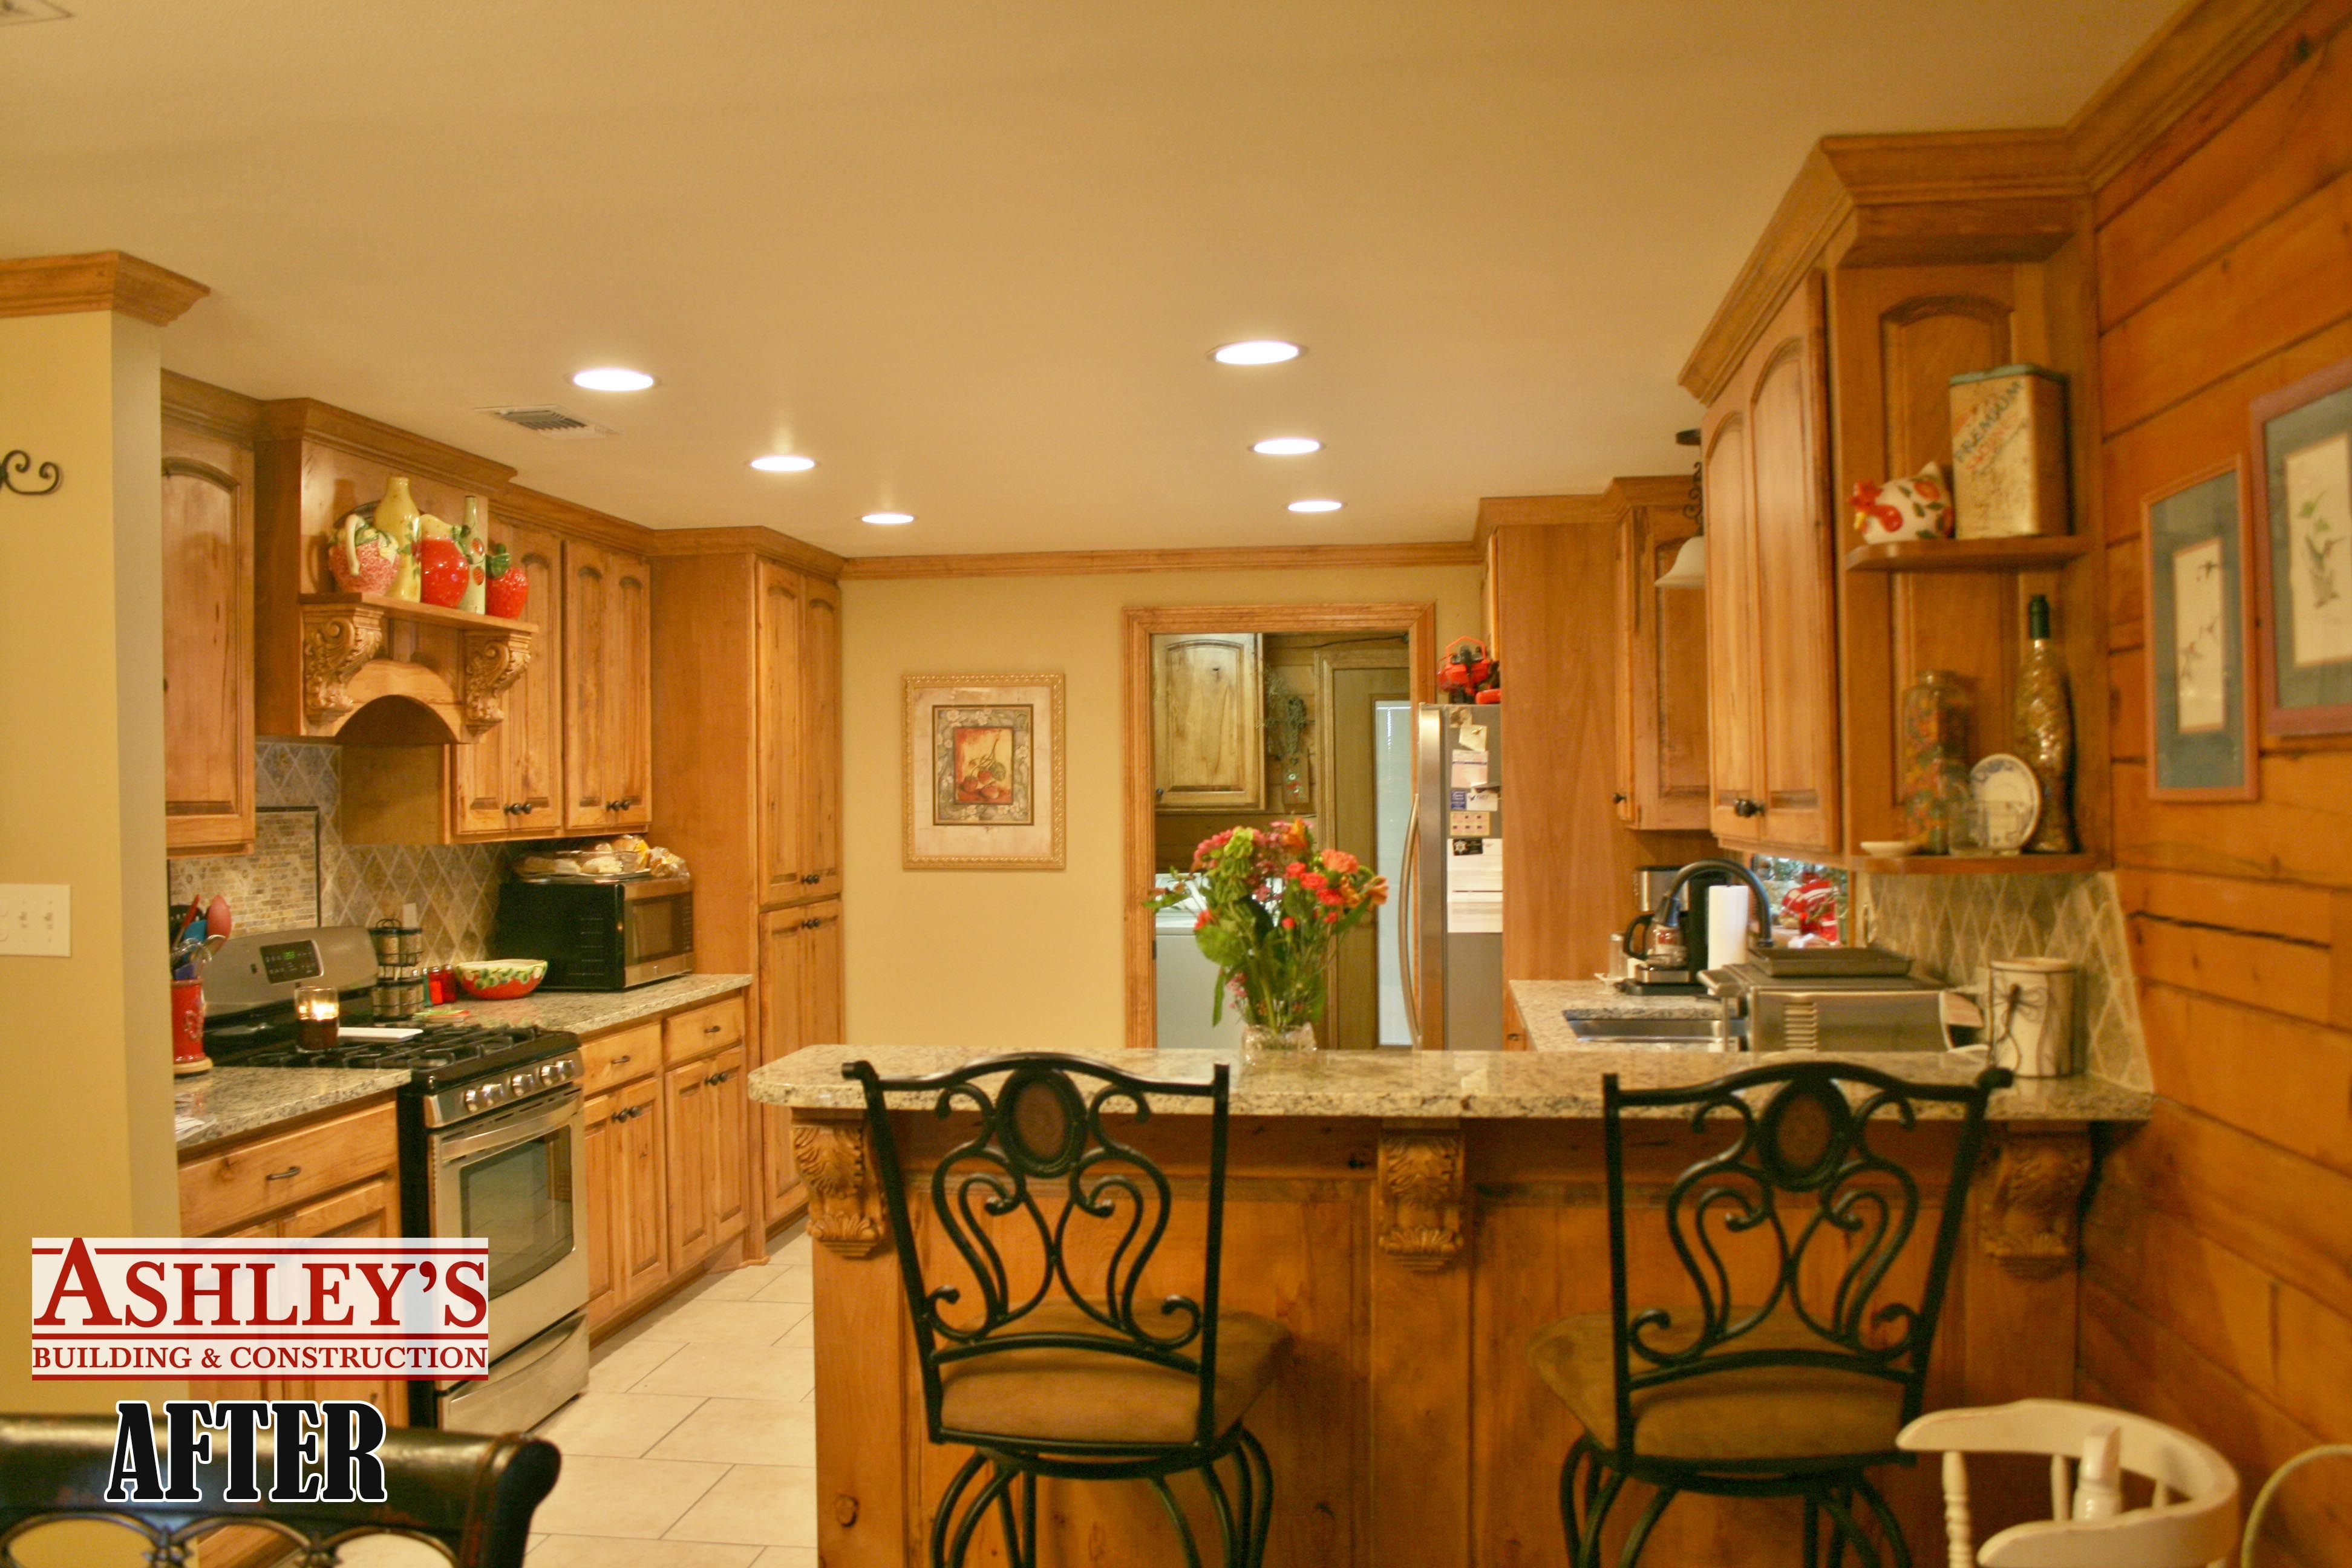 Rustic Beech Cabinets Ashleys Building After Remodel New Granite Countertops Custom